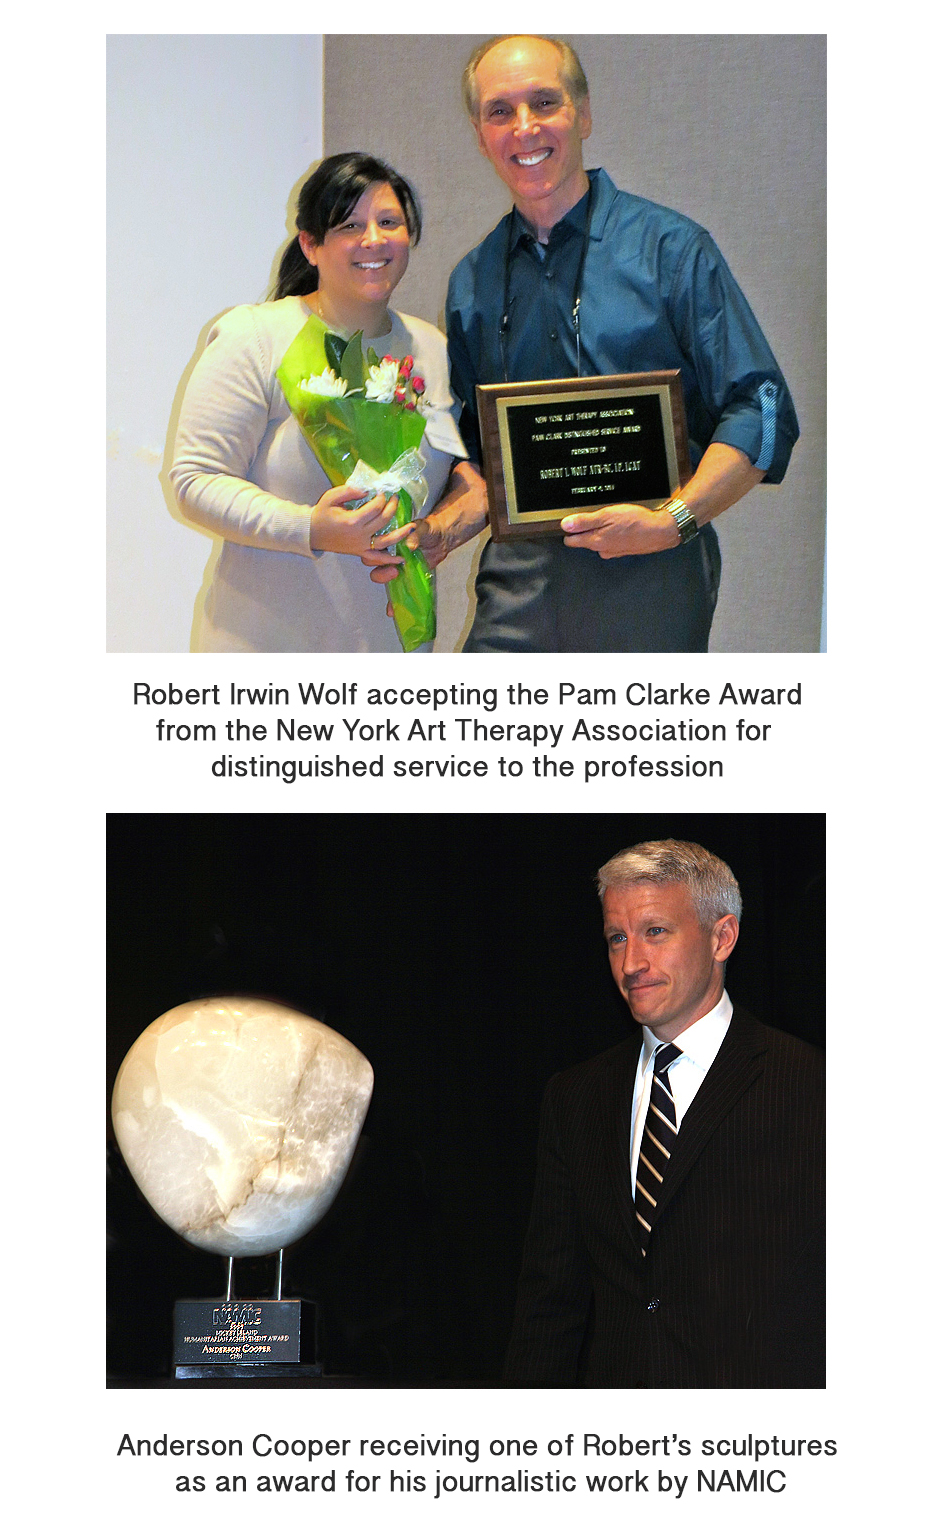 Robert Irwin Wolf, Art Therapy Professor